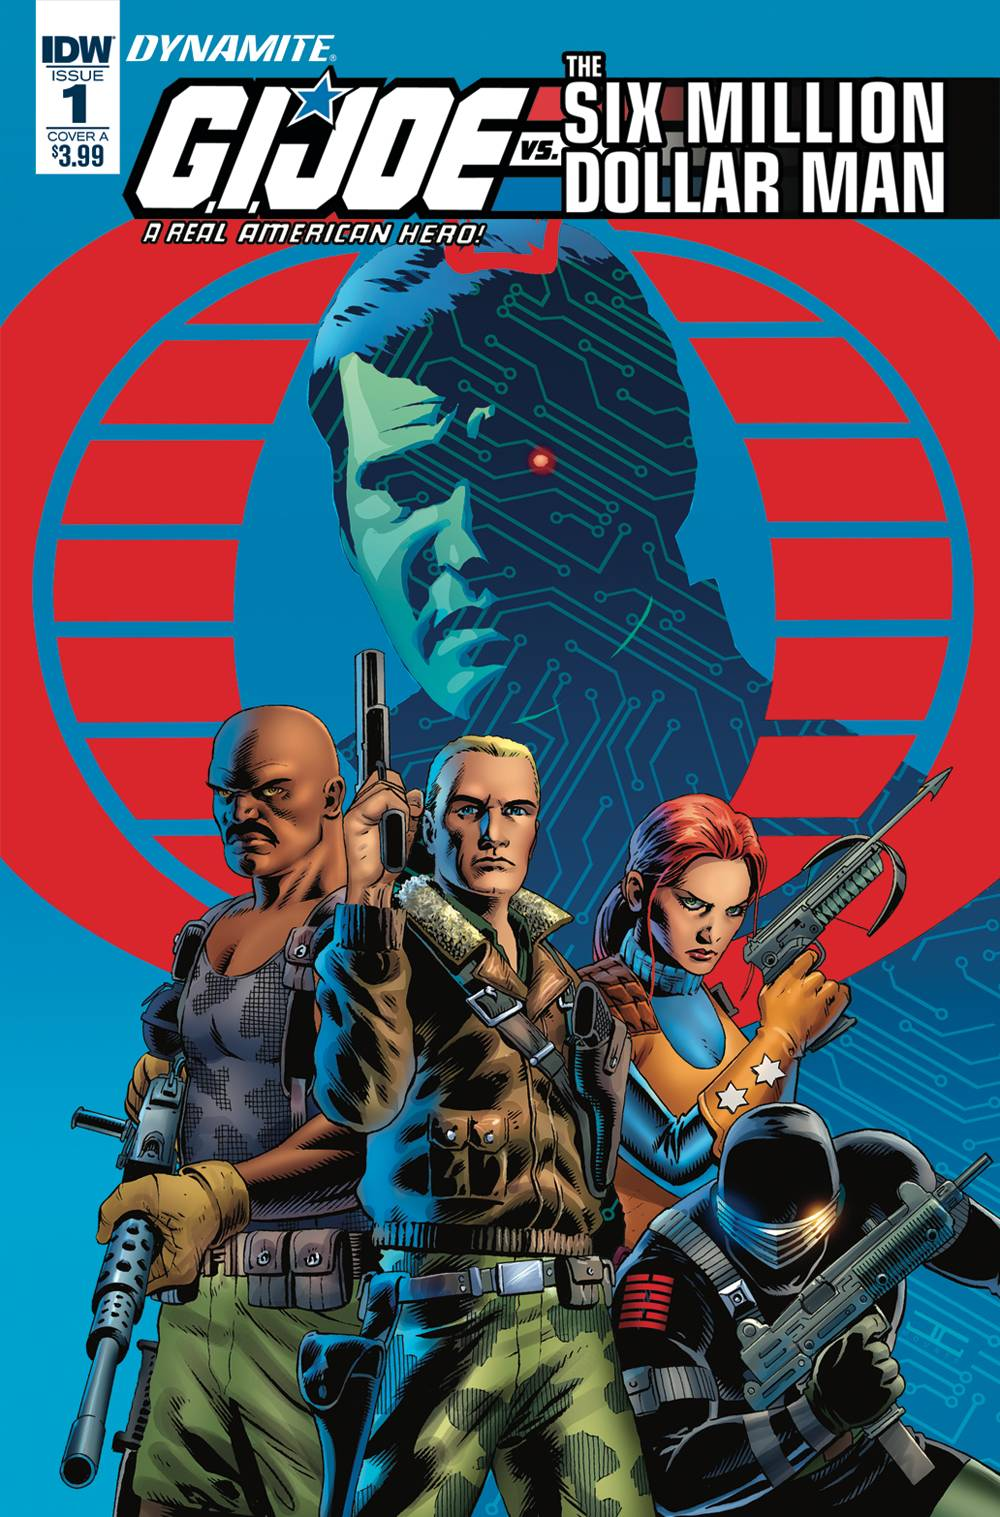 GI JOE VS SIX MILLION DOLLAR MAN 1 CVR A CASSADAY.jpg